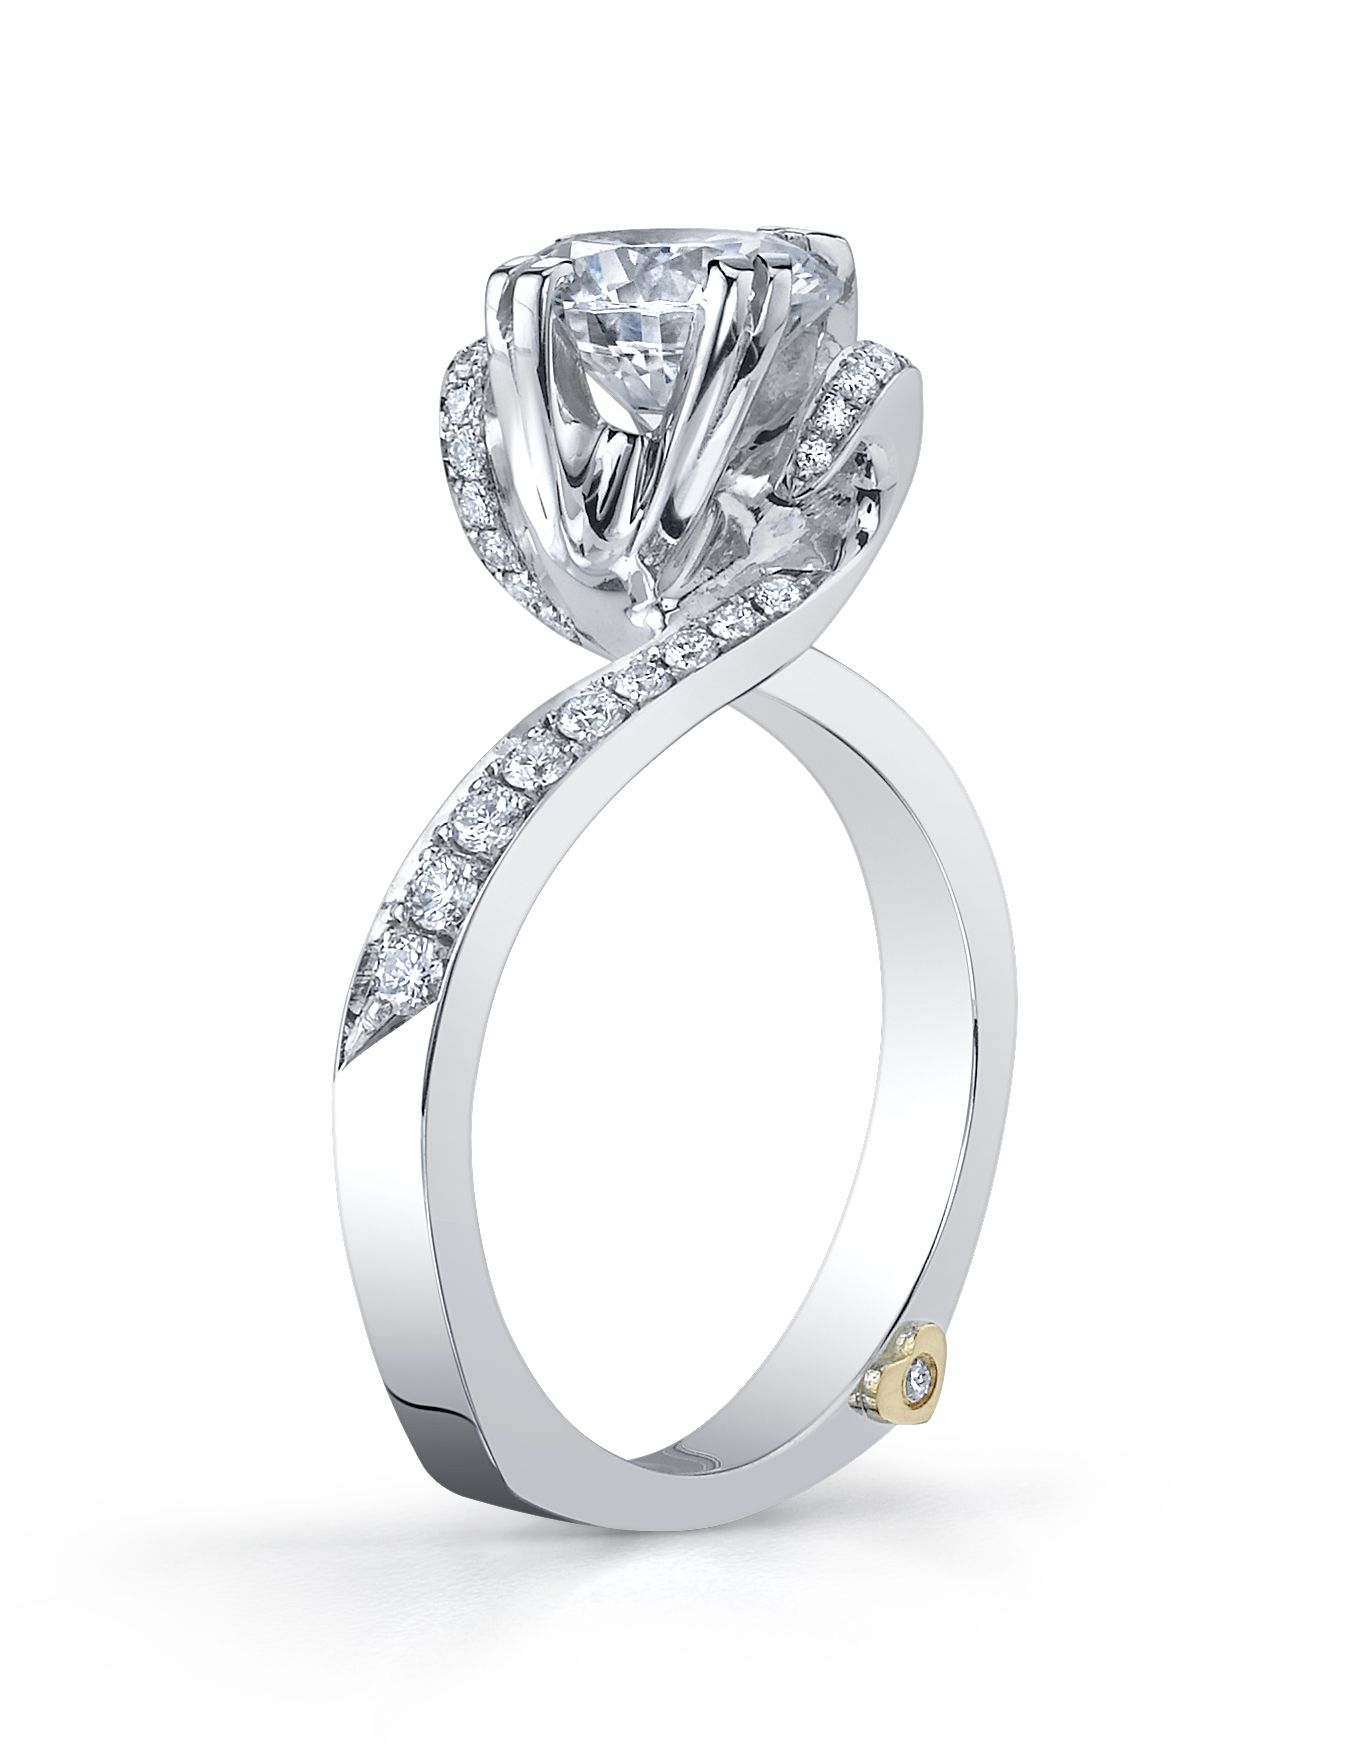 popular diamond rings designs in europe modern style platinum and diamond engagement ring by mark